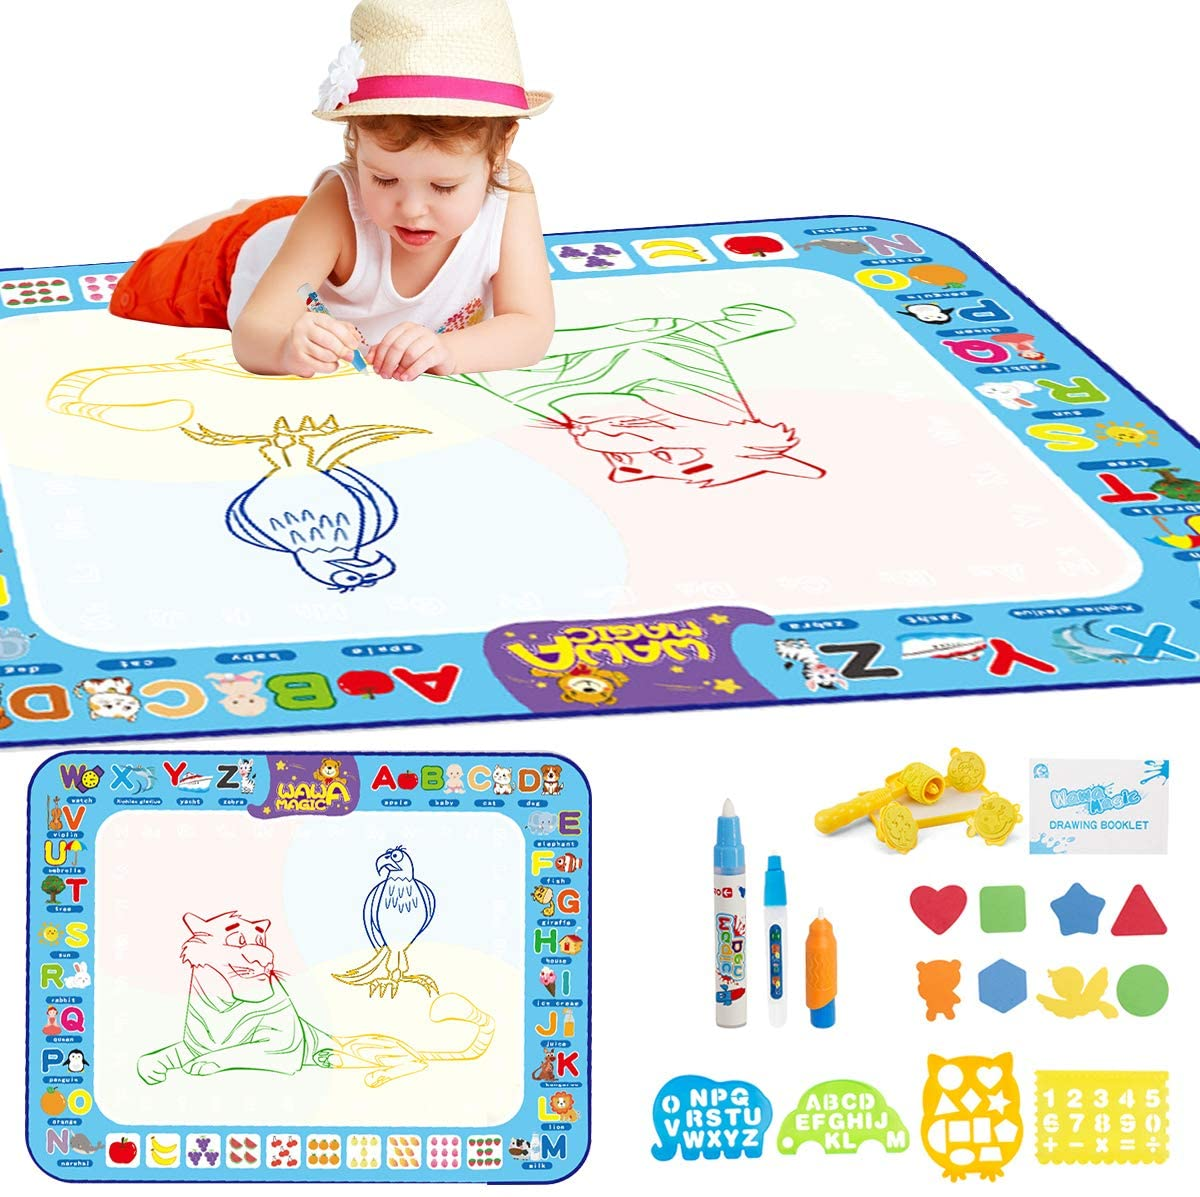 iFCOW Kids Painting Mat, 100x75cm Baby Kids Water Doodling Mat Water Painting Drawing Board Portable Educational Toy Gift for Children Toddlers